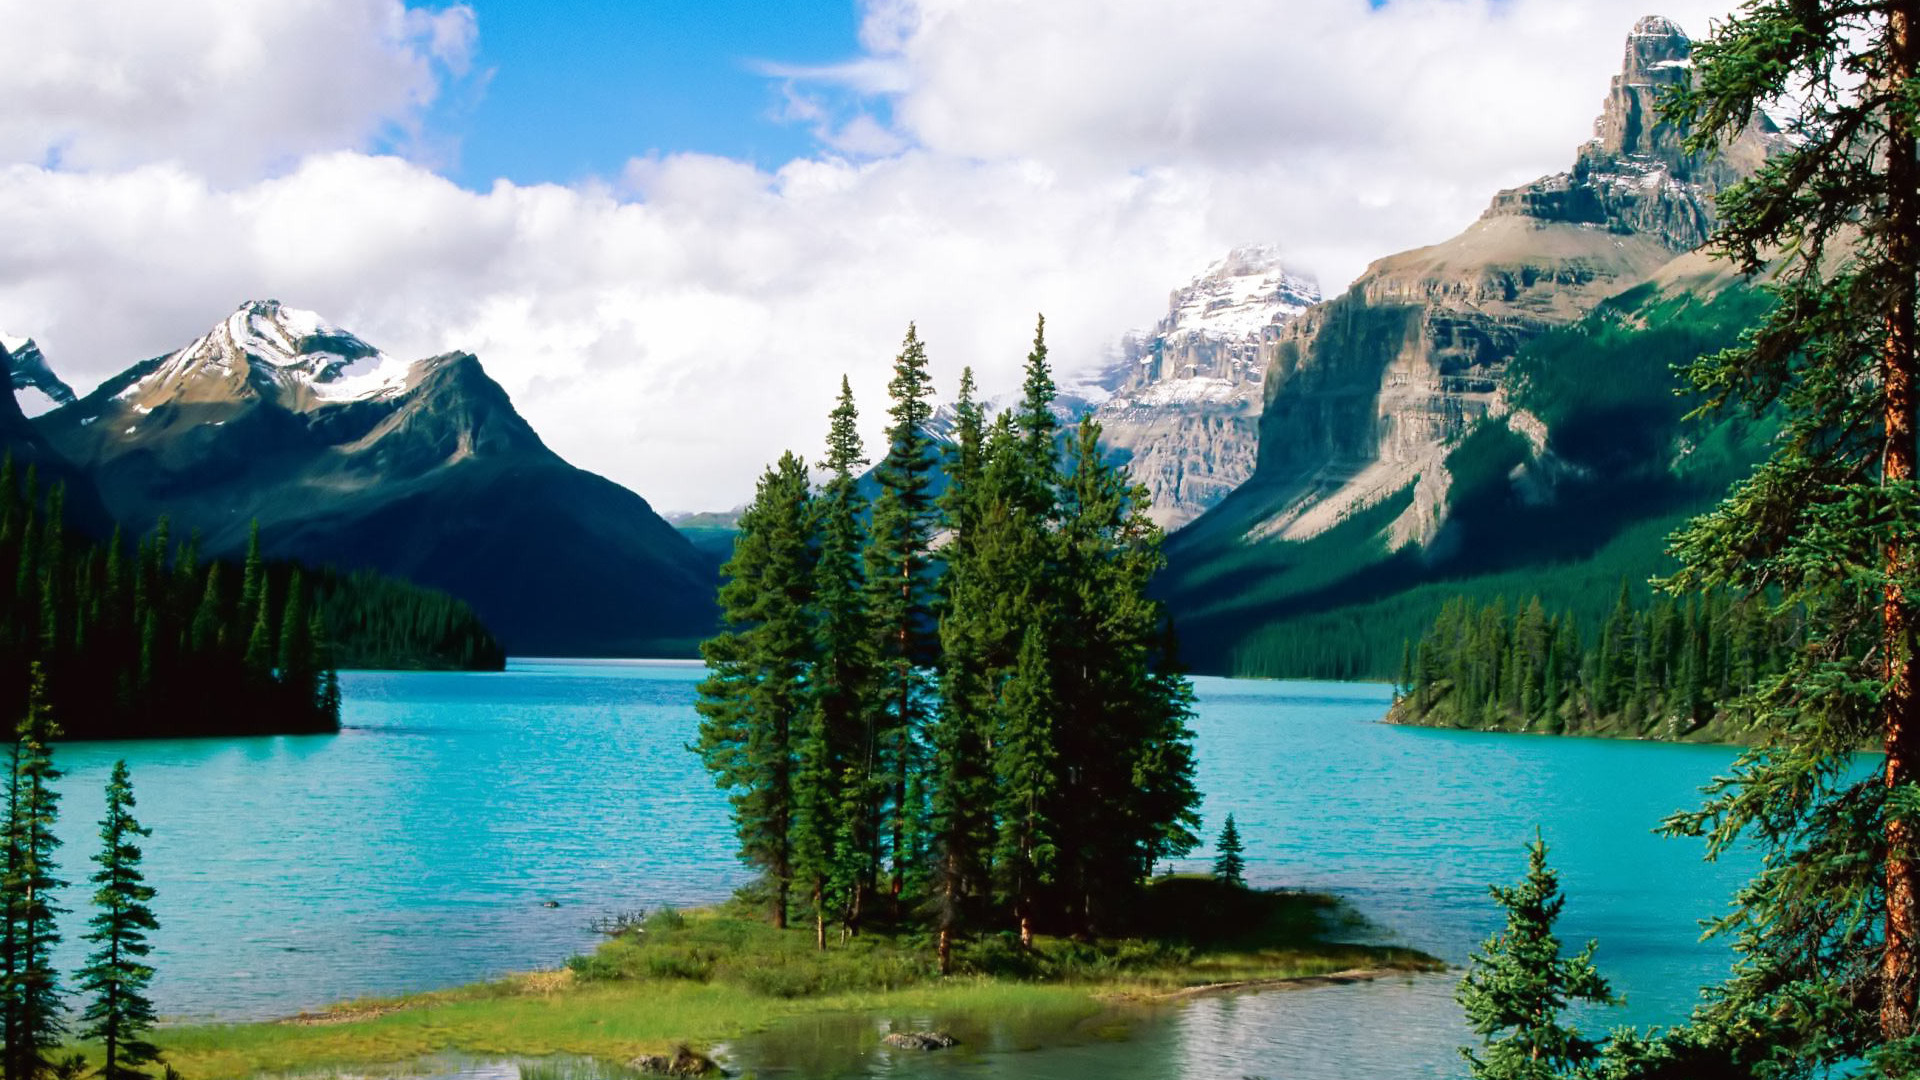 Download Maligne Lake Canada 1920x1080 Wallpaper 1920x1080